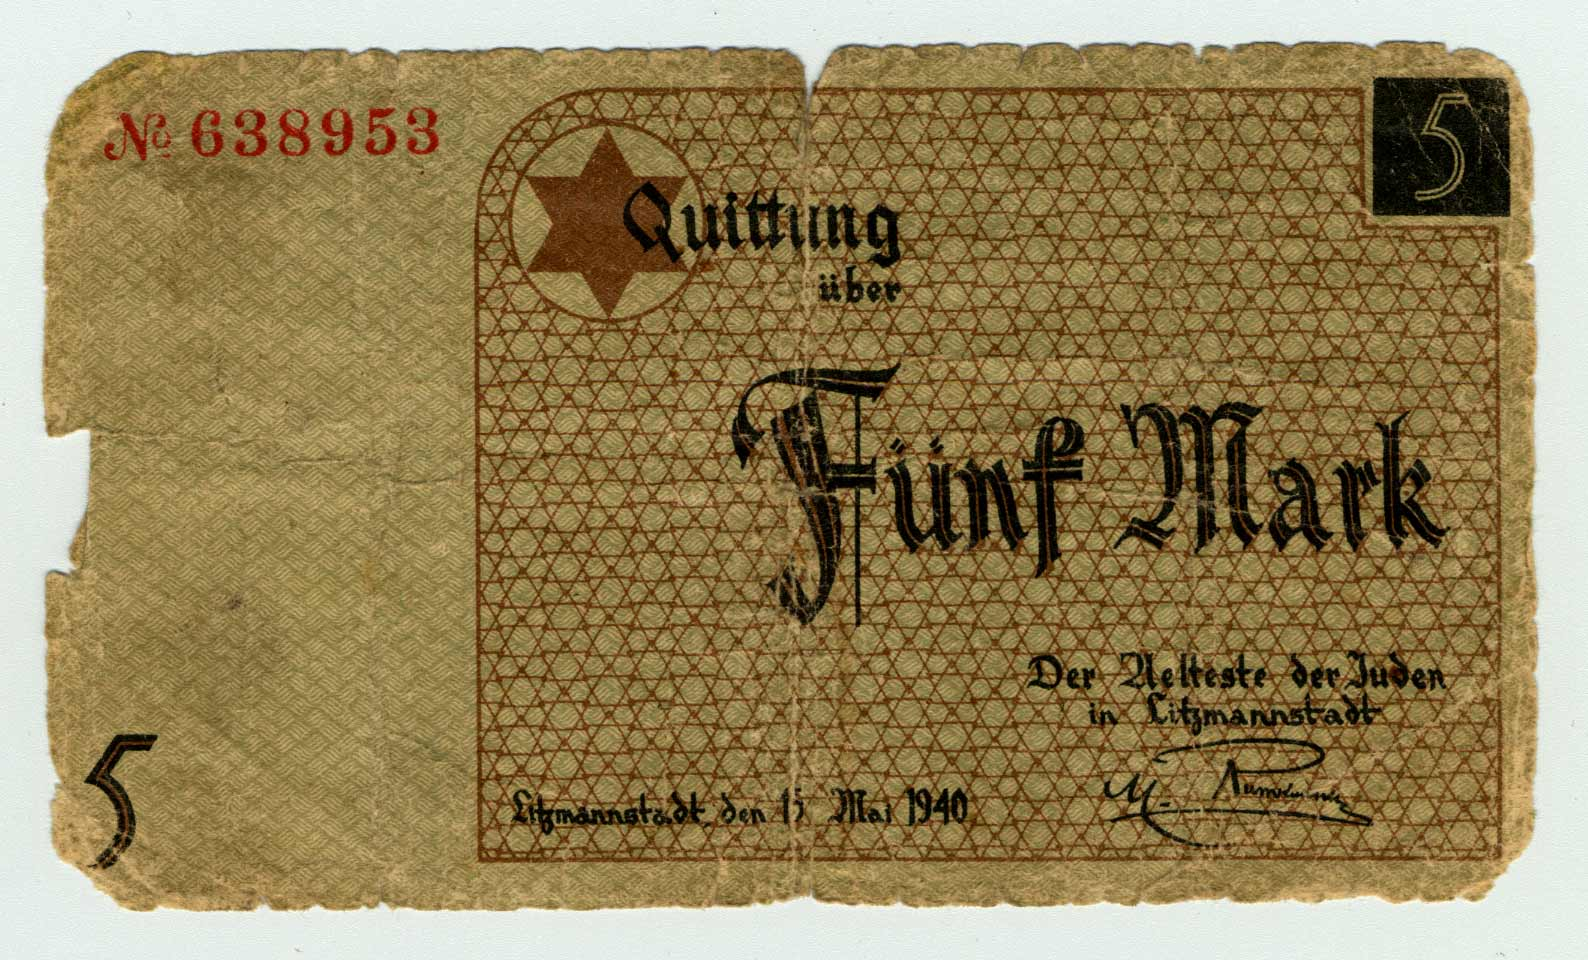 This paper money from the Lodz ghetto belonged to Avrum Feigenbaum. Ghettos were neighbourhoods in which Jews were confined in deplorable living conditions. The inhabitants of the ghetto were forced to use this currency to prevent them from interacting with the outside world.